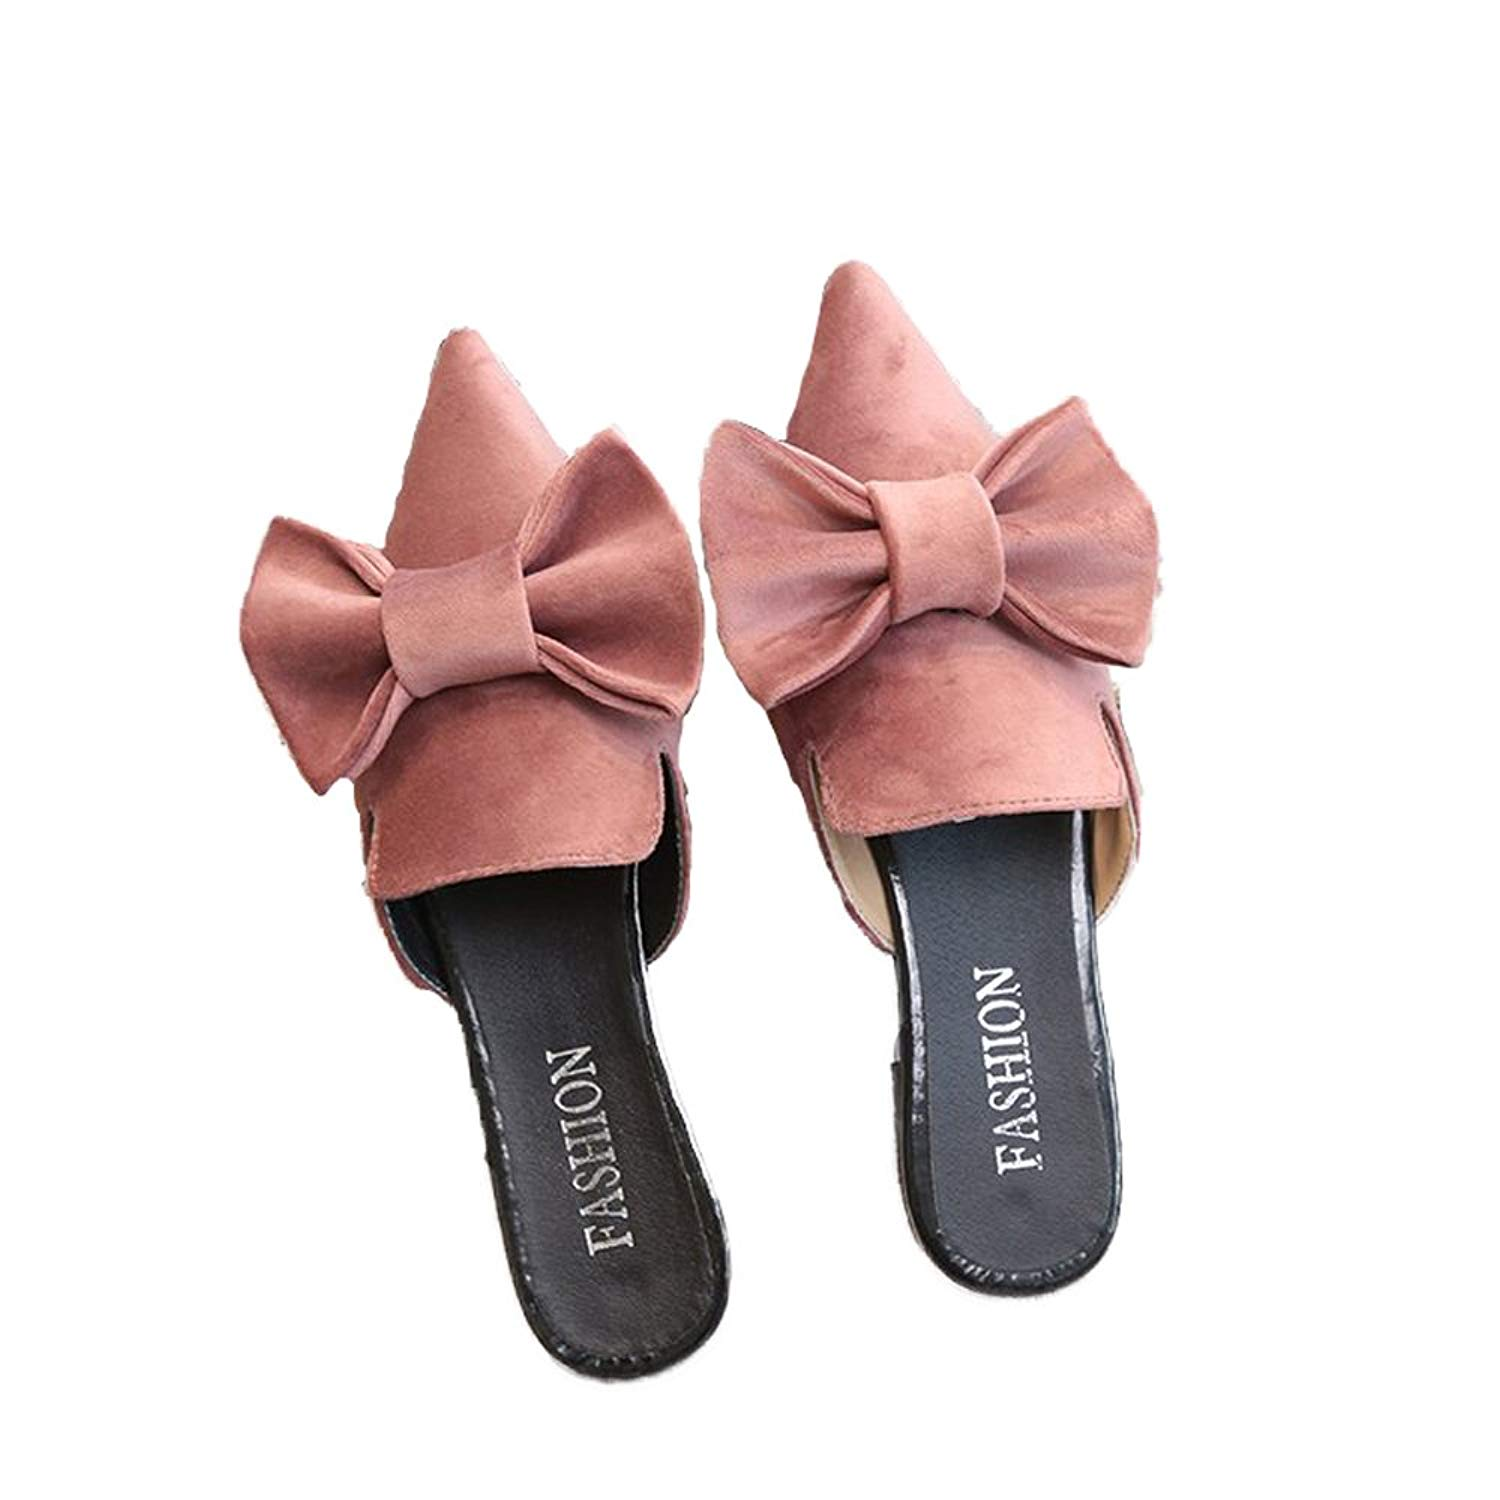 d9e28a45f Get Quotations · Luobote Mules Flat Mules Women Mules Loafer Mules Slip On  Mules Bow Mules